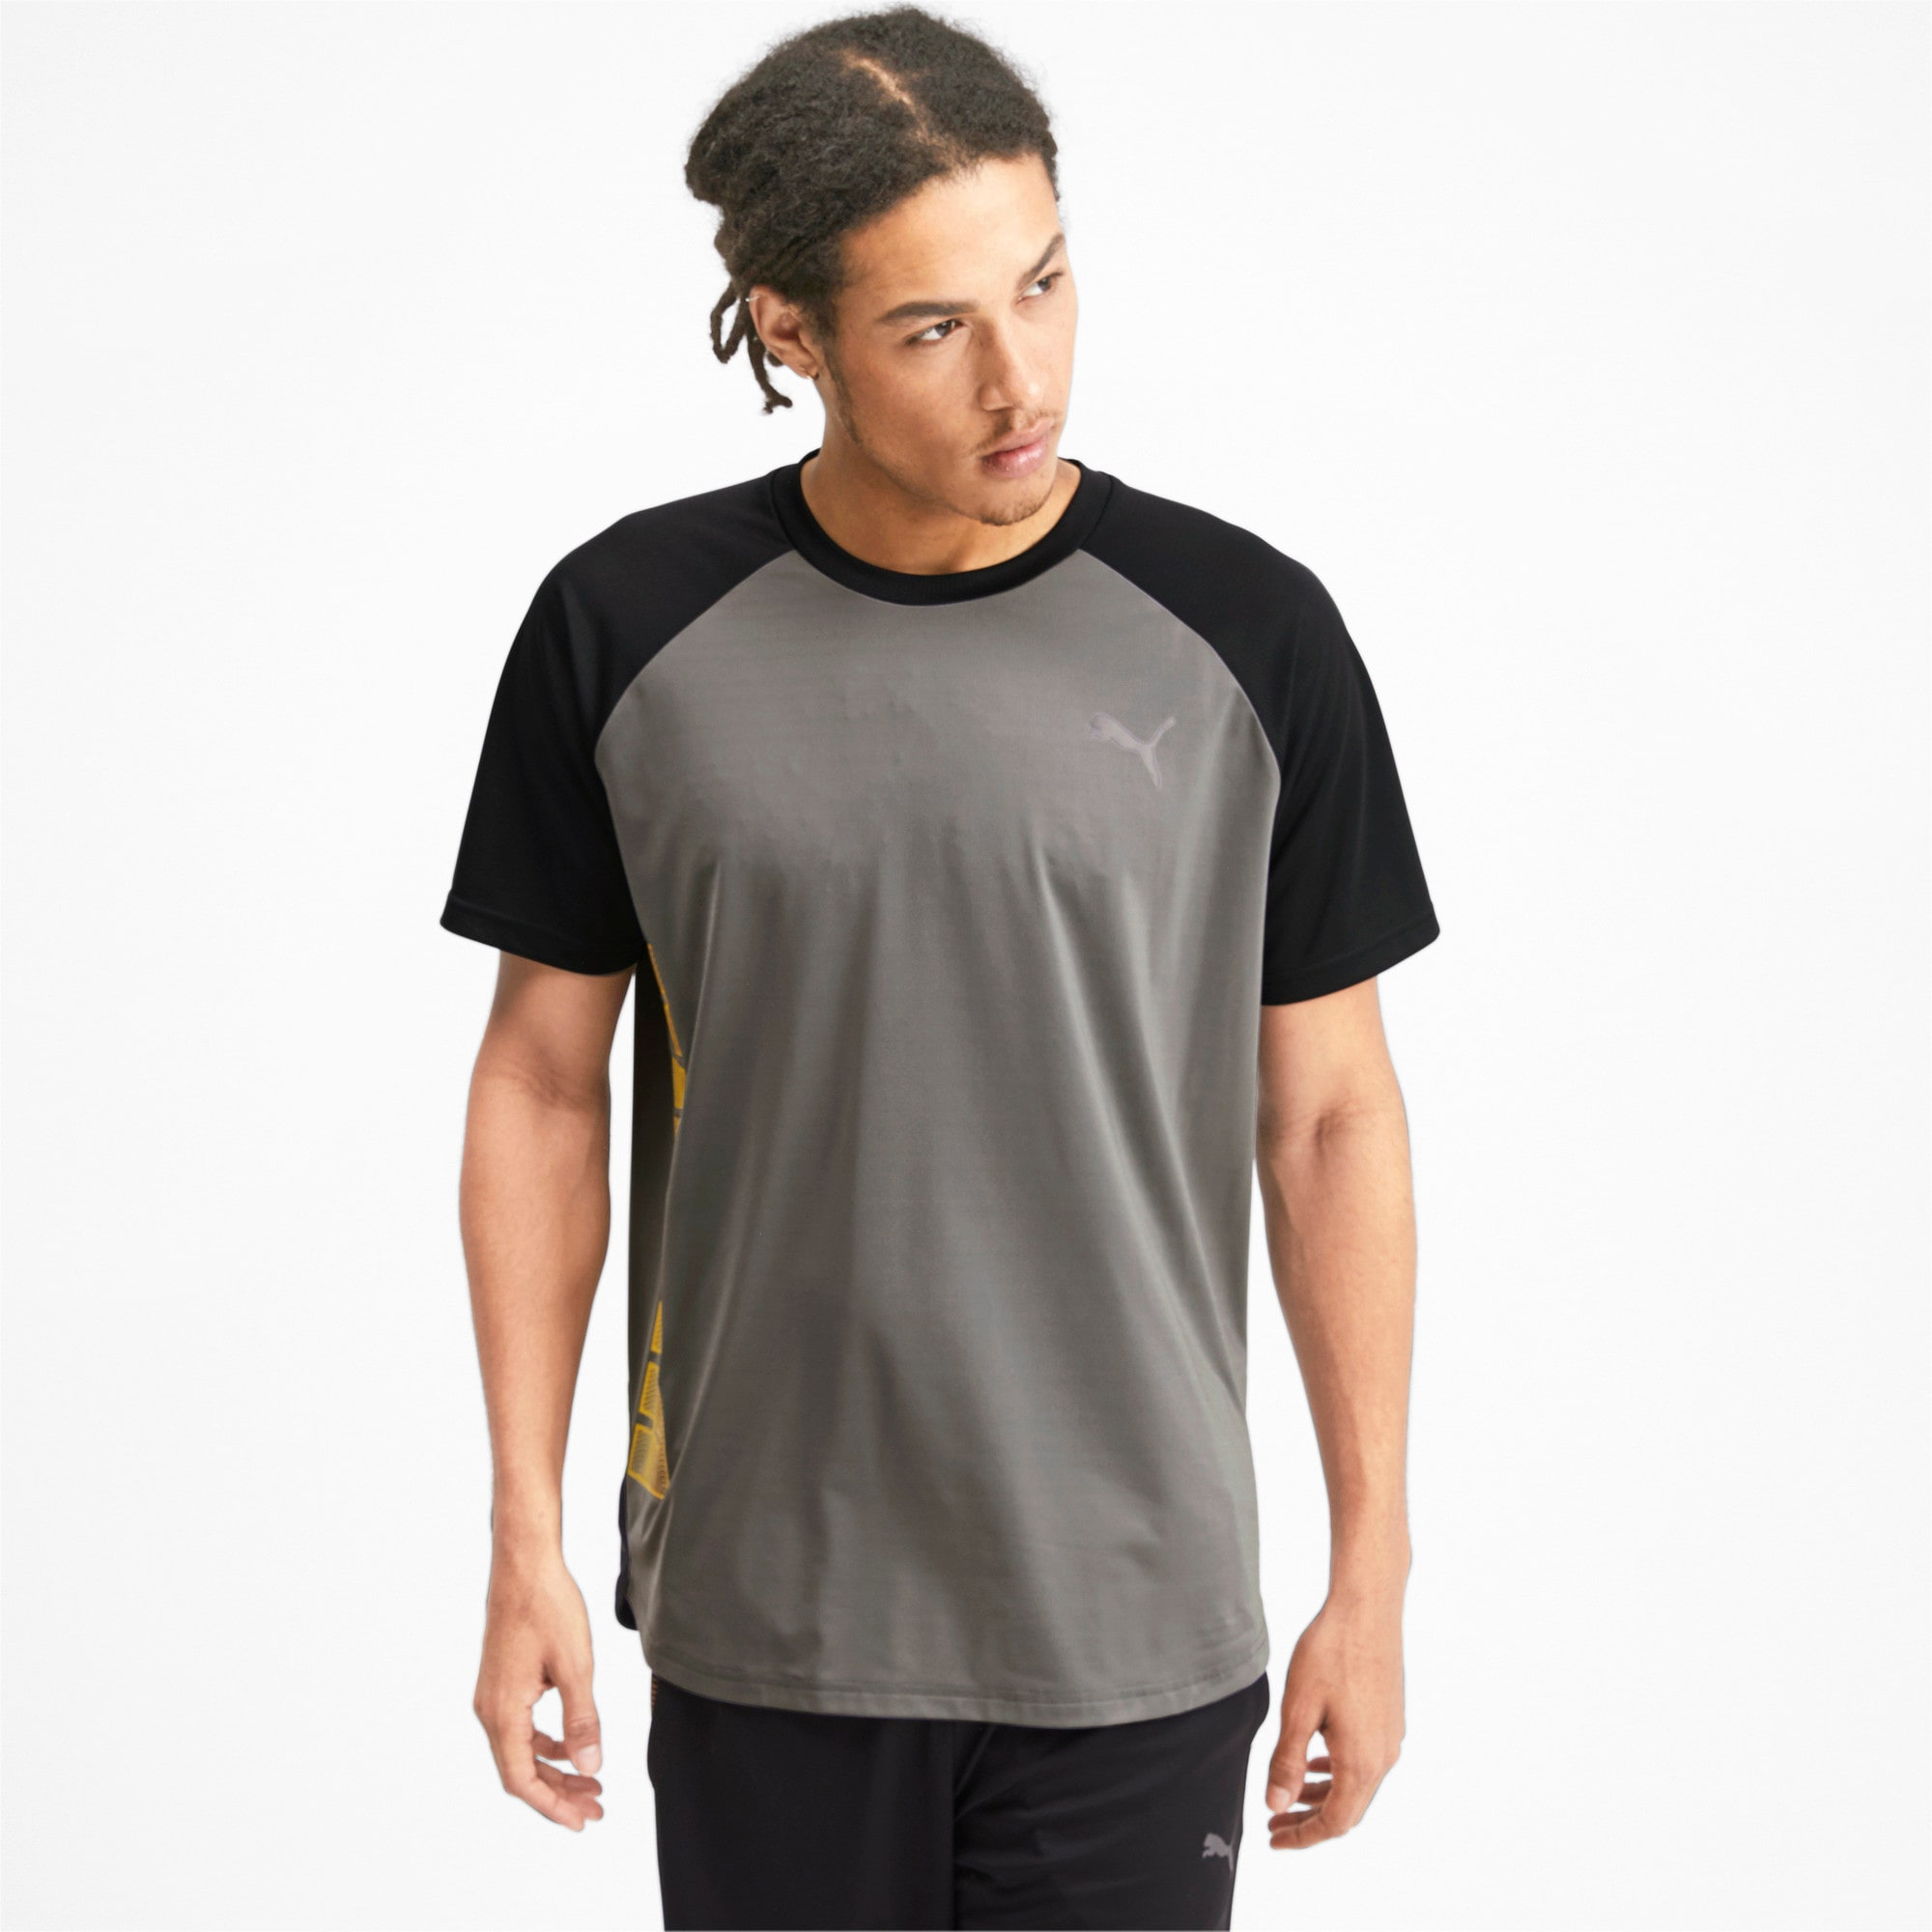 Thumbnail 1 of Collective Loud Men's Tee, CASTLEROCK-Puma Black, medium